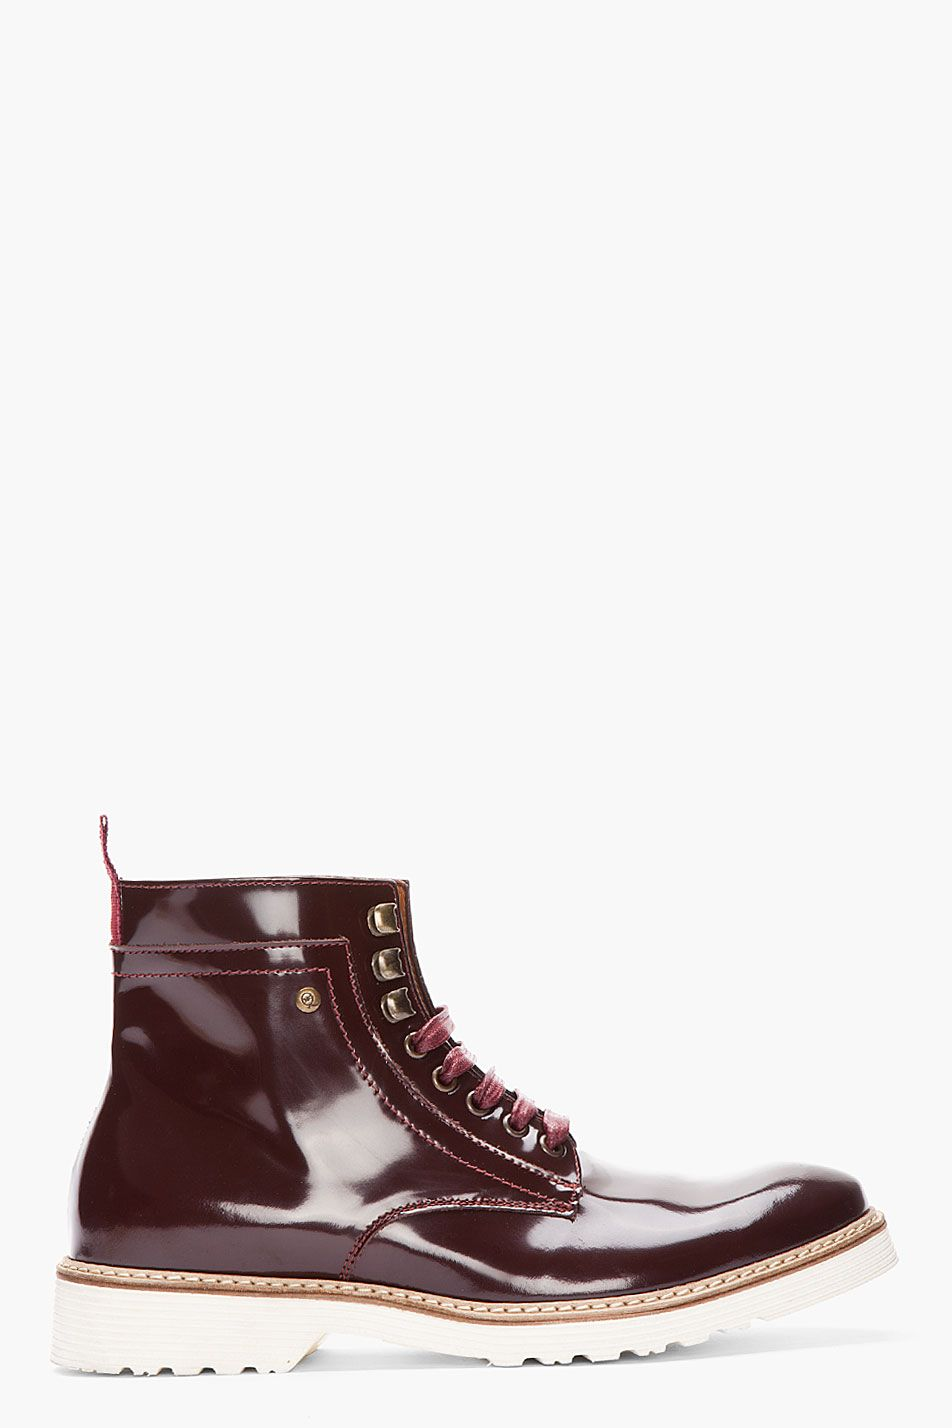 Clearance Excellent Countdown Package For Sale Leather Boots - Burgundy Alexander McQueen Outlet New Arrival zOV0B